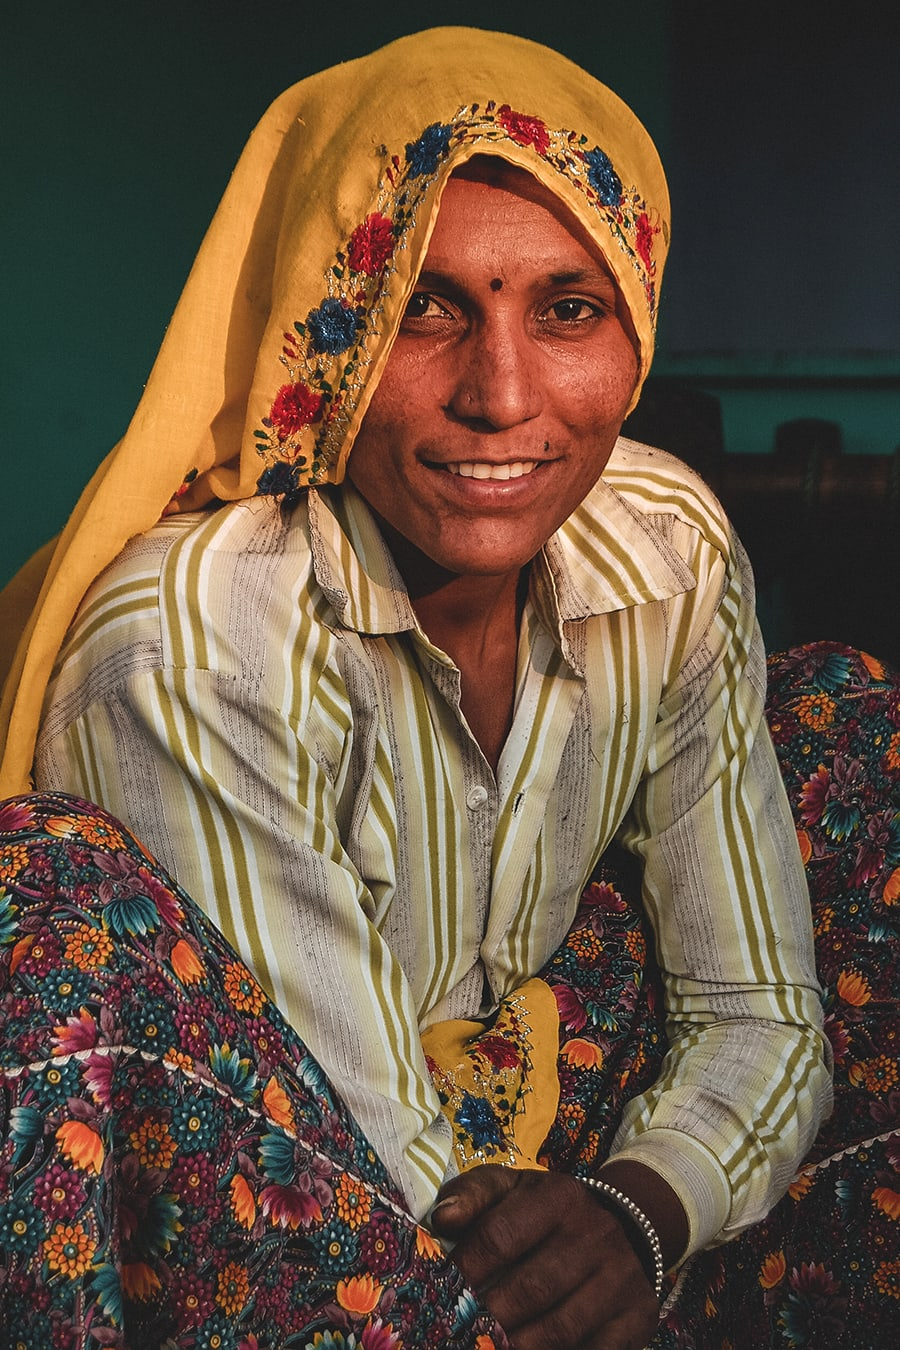 Woman from the Meena tribe, near Alwar in Rajasthan